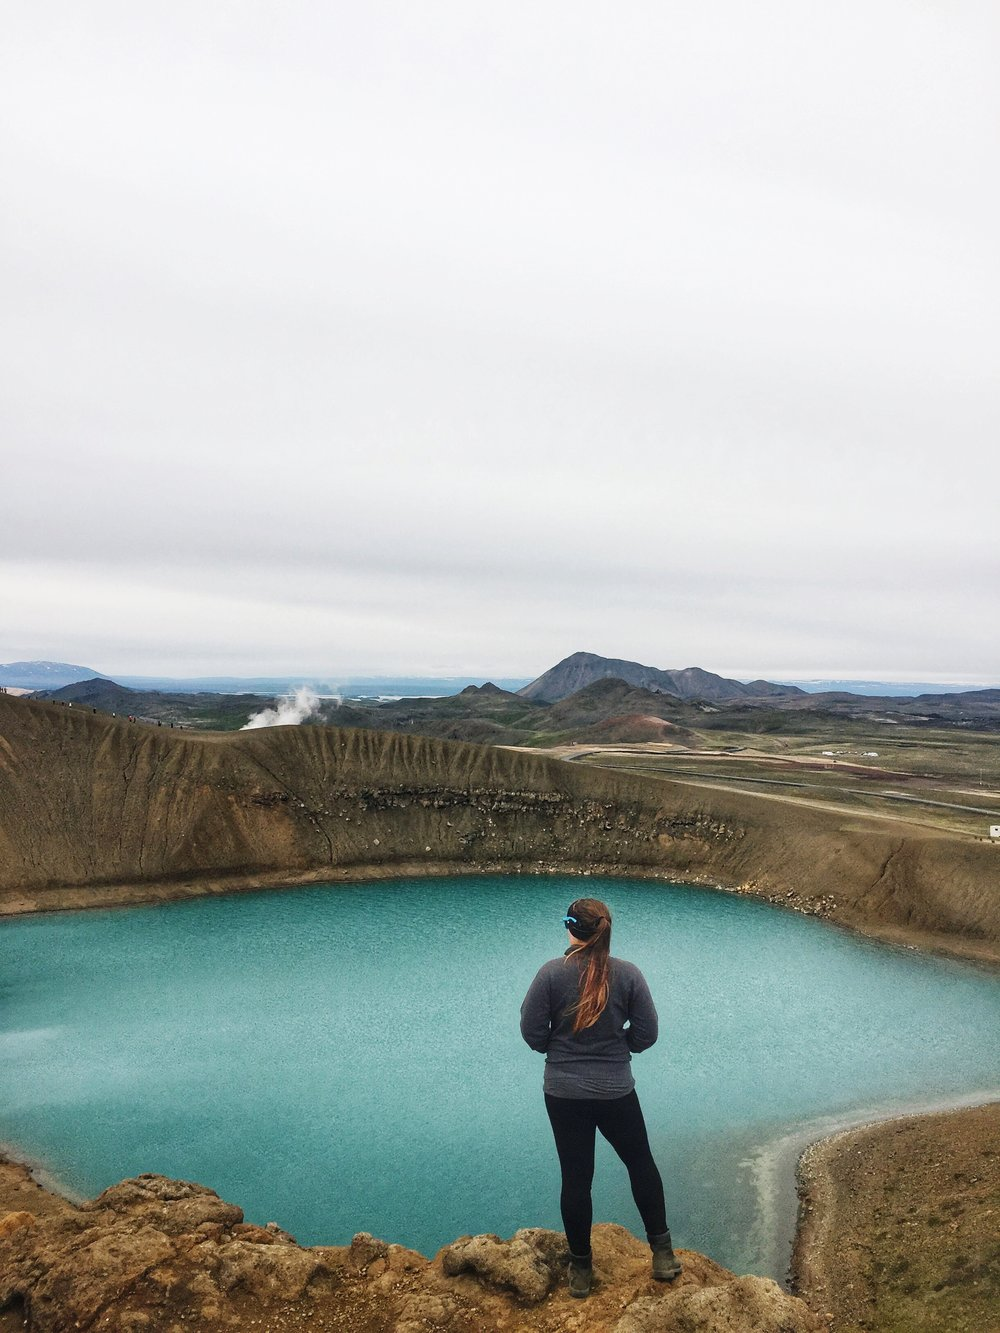 Don't let any worries take your headspace out of epic views. Like this one in Iceland. My Lena cup really helps me feel more in control.